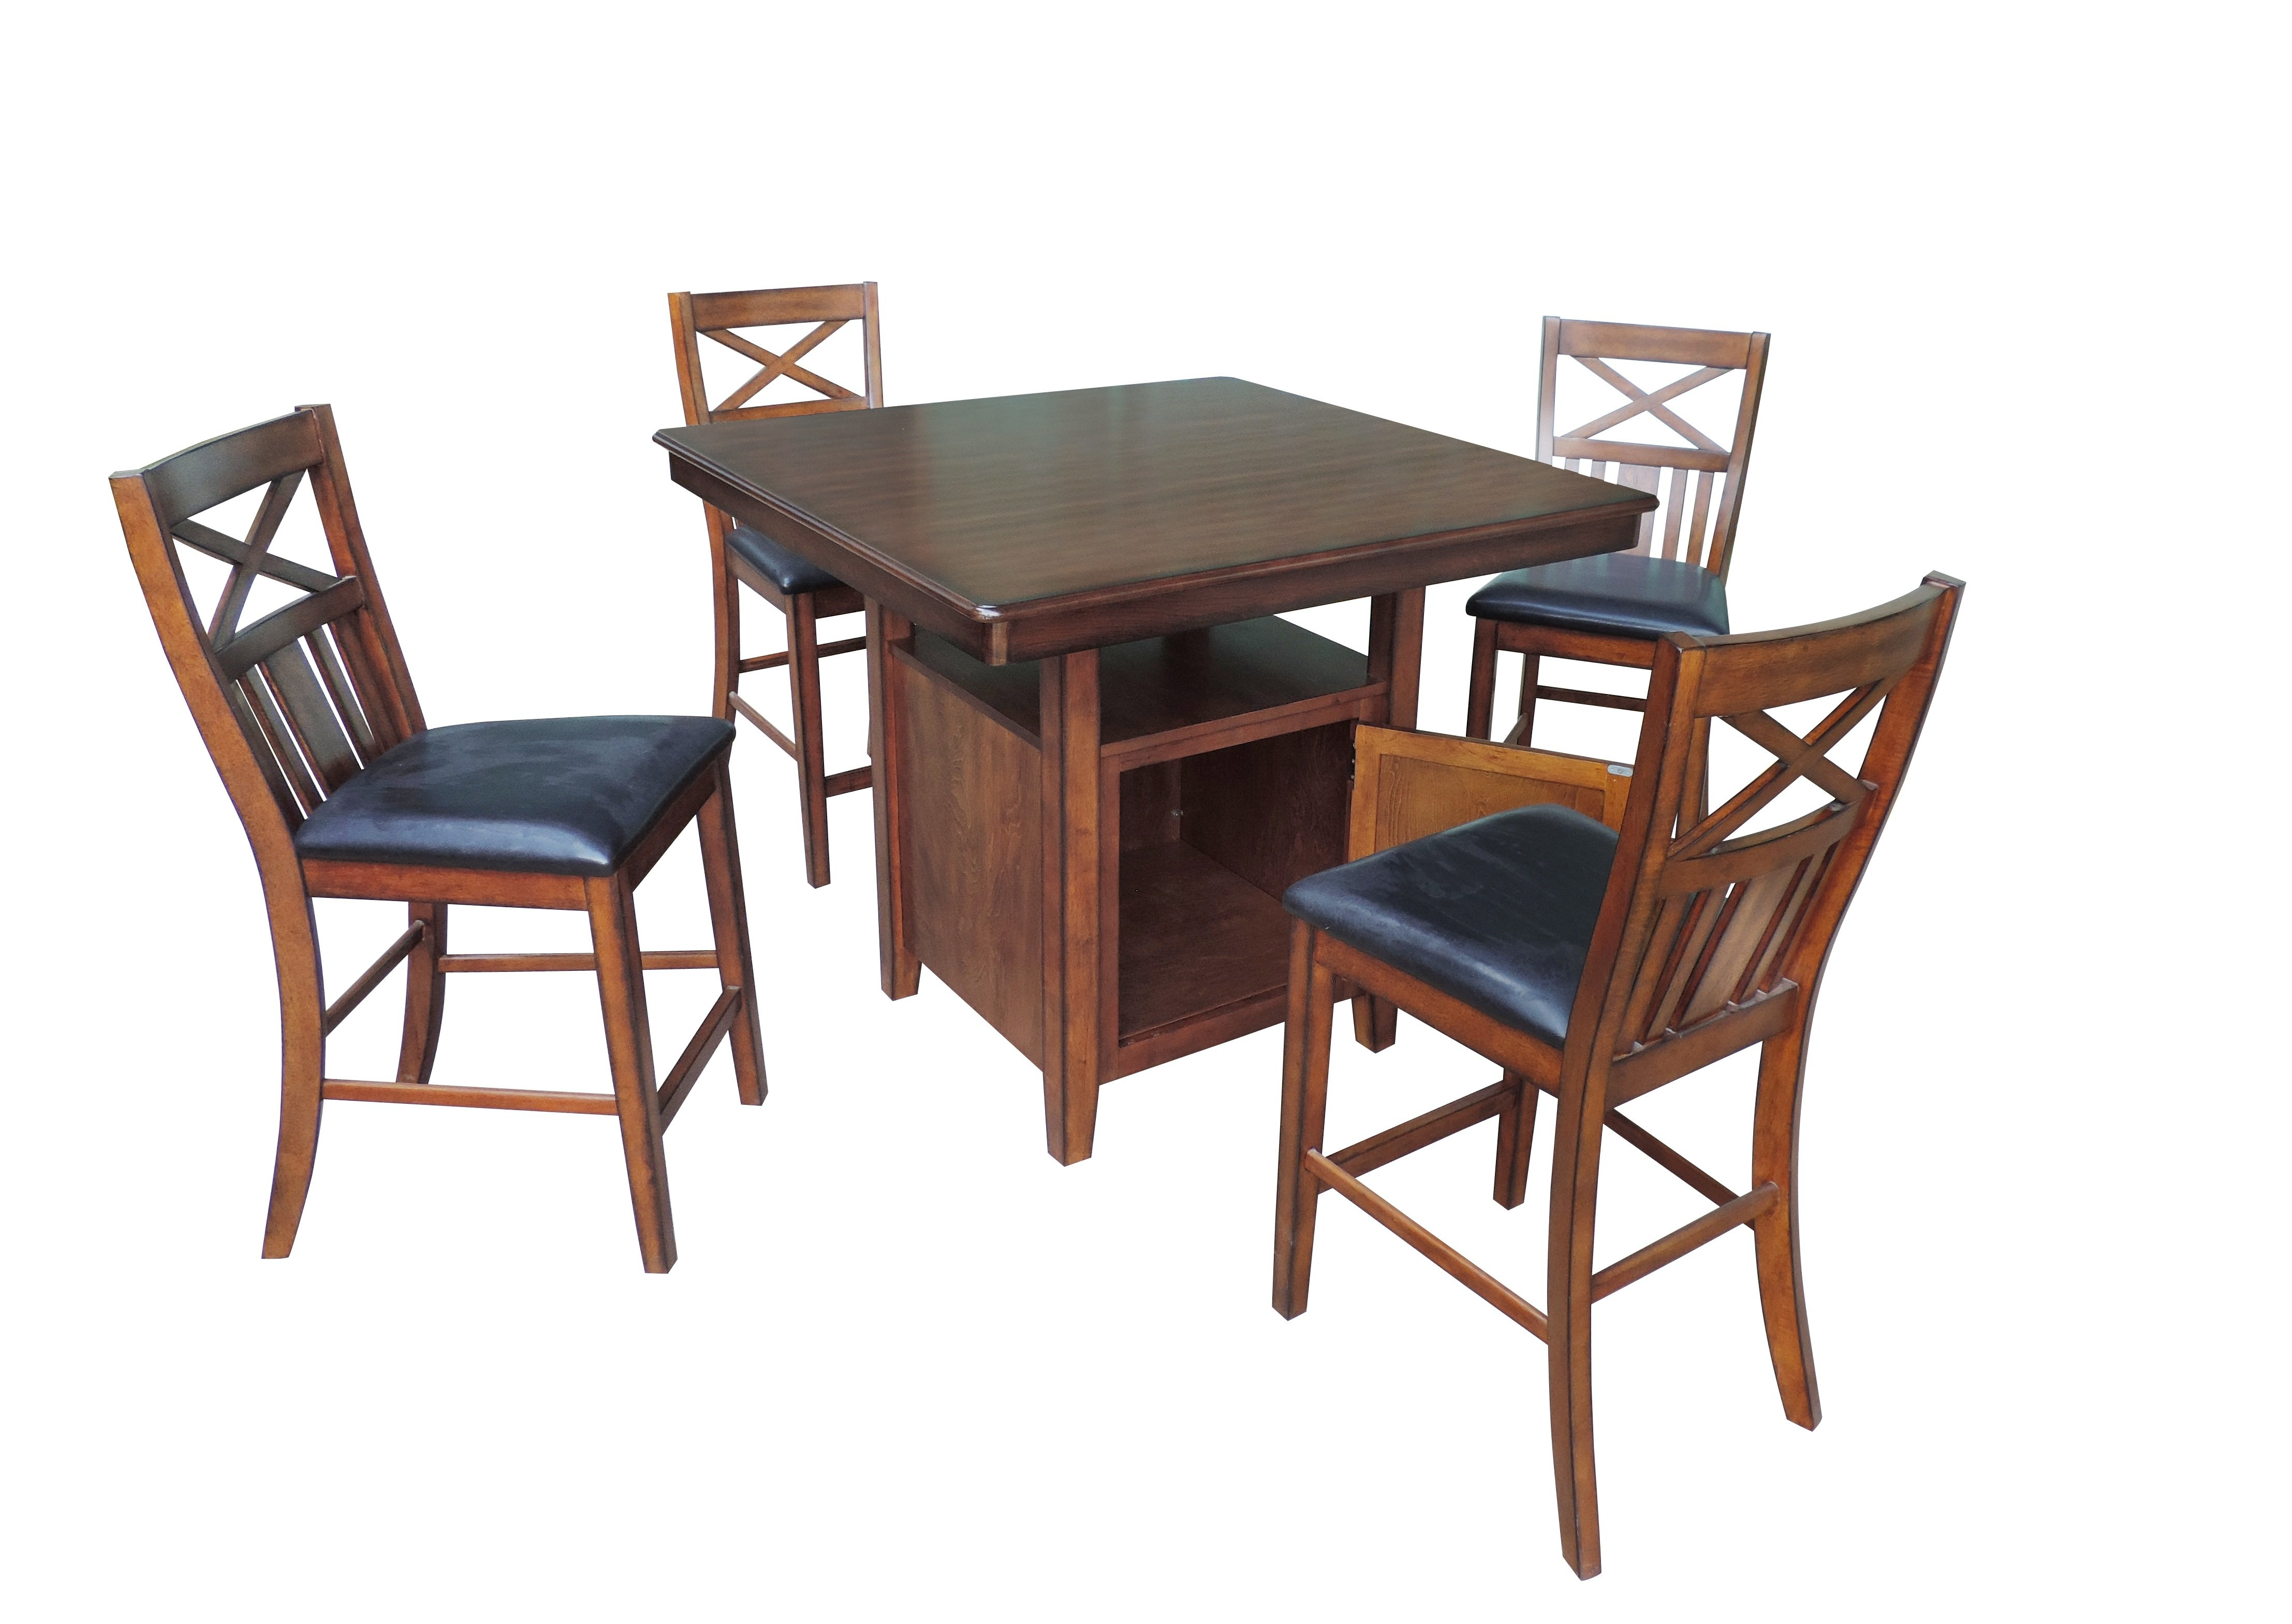 Ephraim 5 Piece Dining Sets Pertaining To Widely Used Nathanielhome 5 Piece Counter Height Dining Set (View 8 of 20)